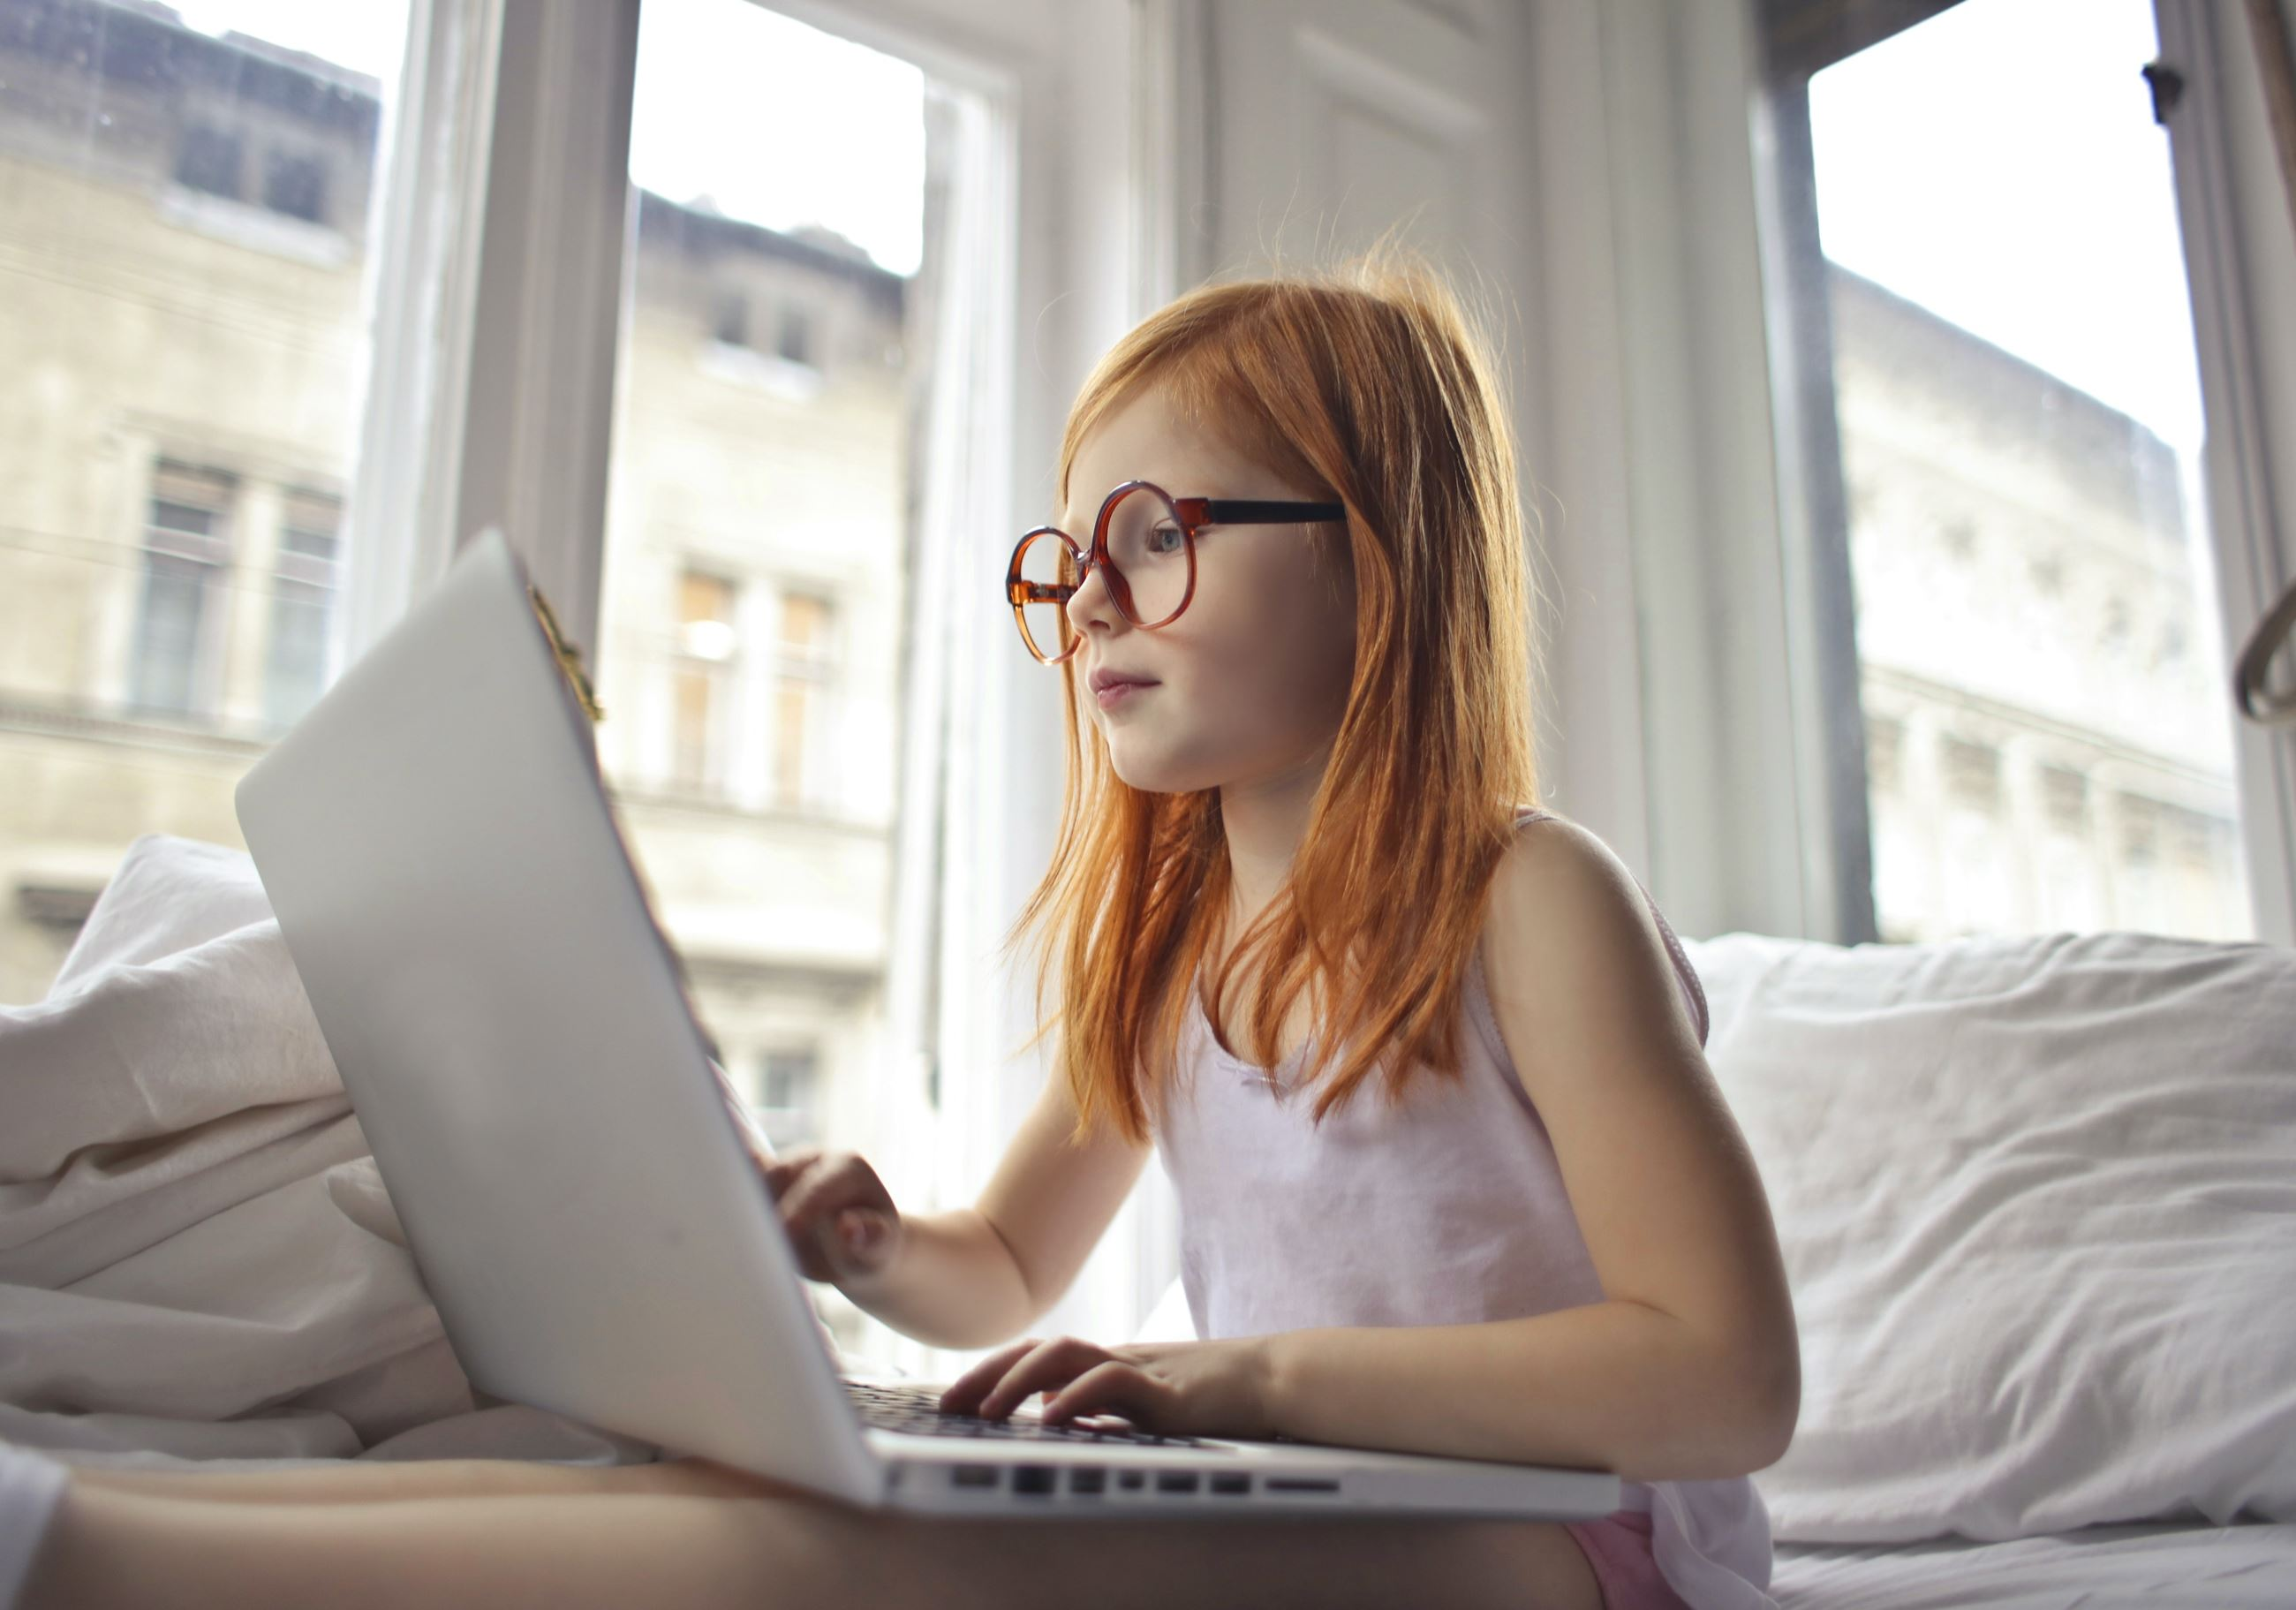 a-girl-watching-movie-on-computer-laptop-3761513 (1)